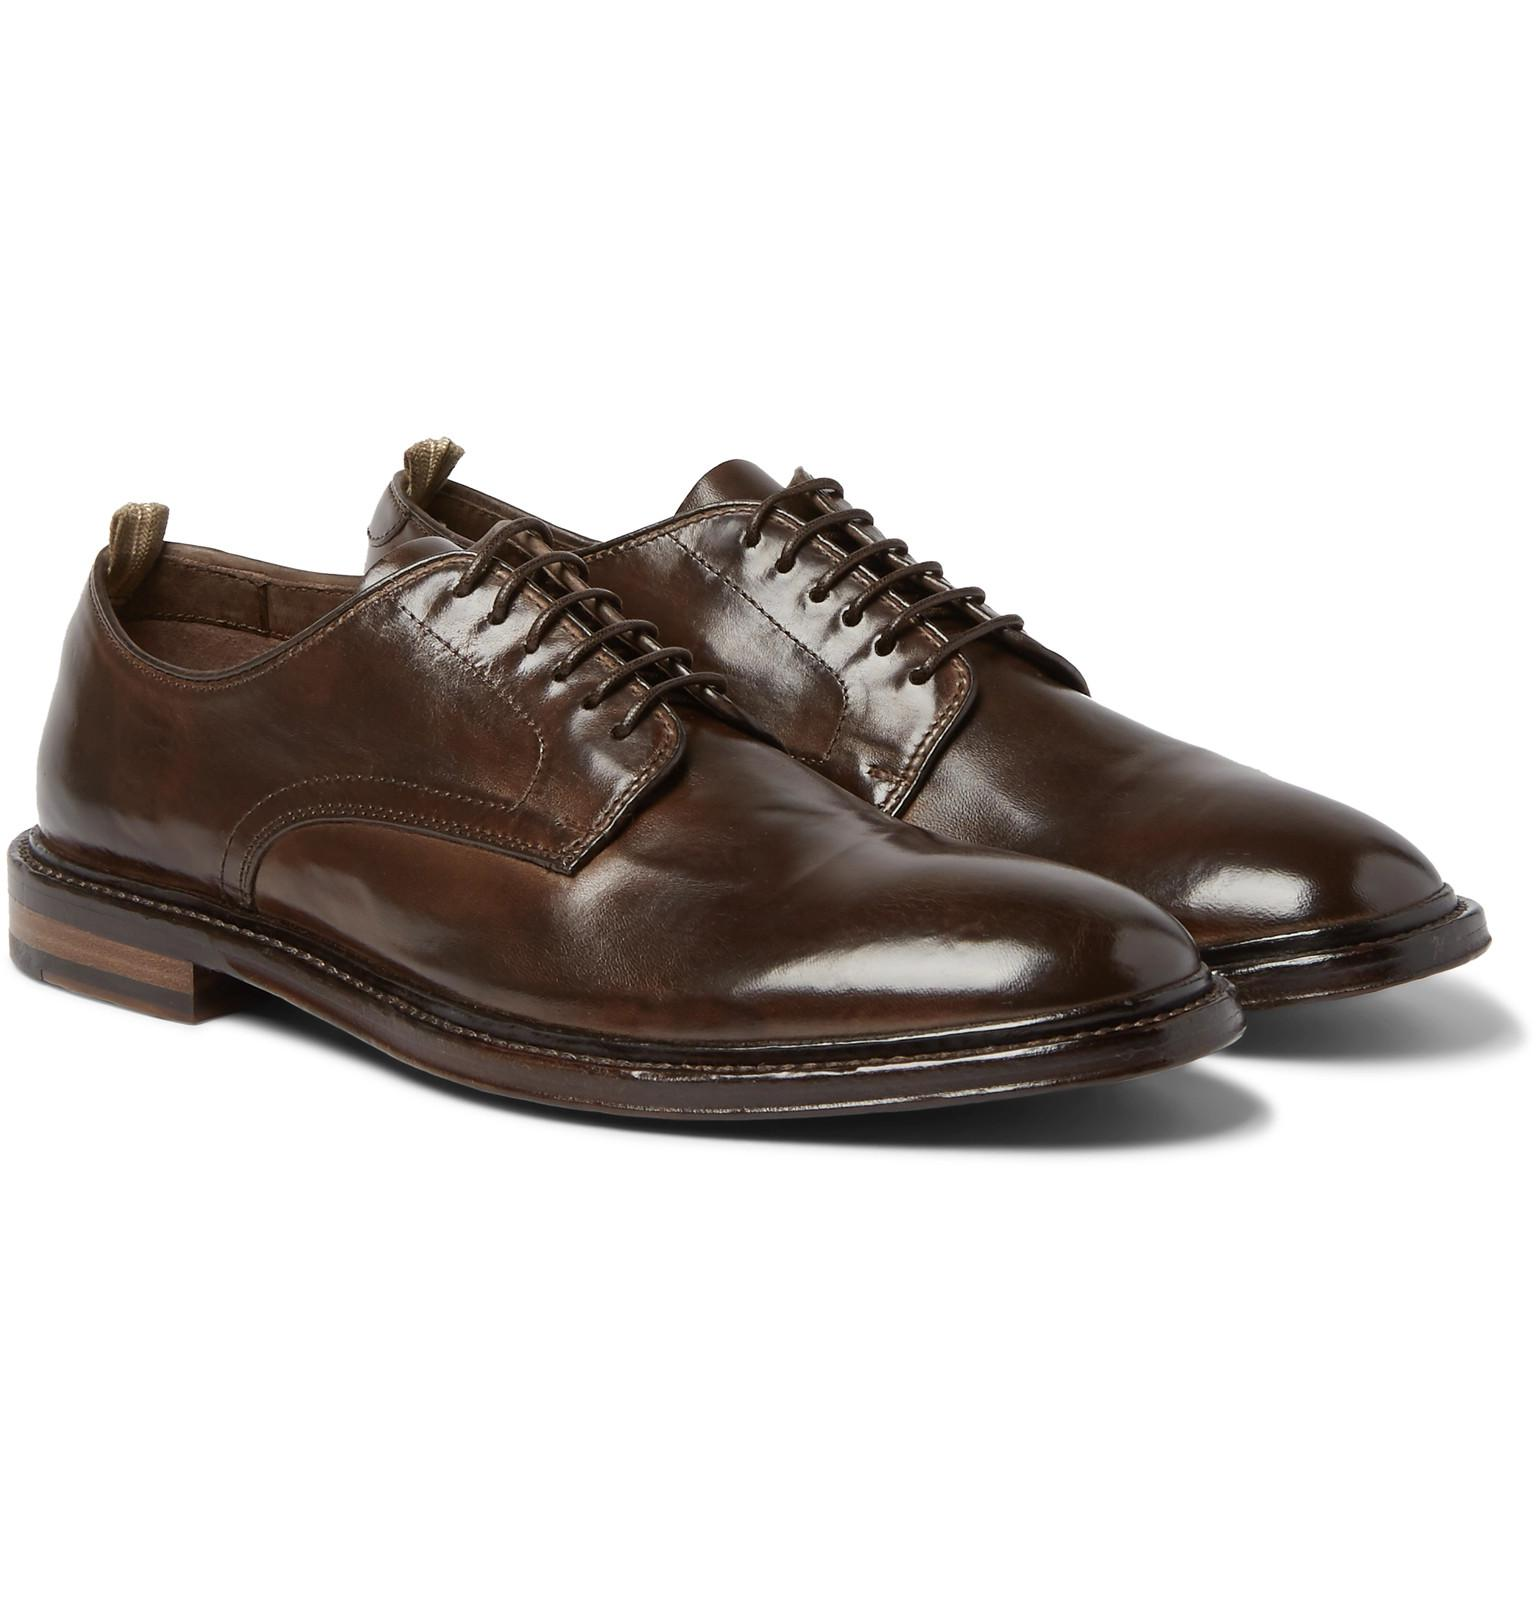 100% authentic online Officine Creative Anatomia Cap-Toe Polished-Leather Derby Shoes discount view 1V9yPXiX4